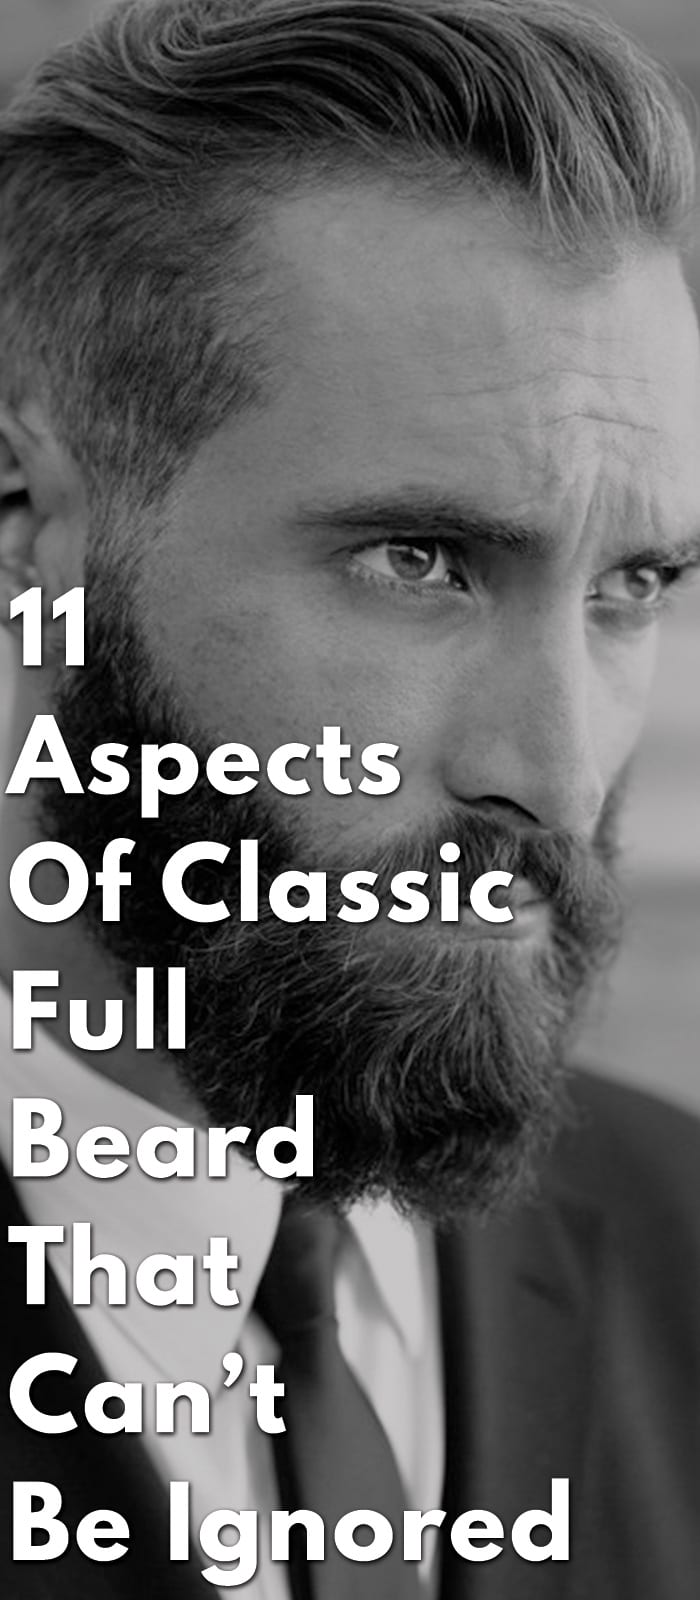 11-Aspects-Of-Classic-Full-Beard-That-Can't-Be-Ignored.